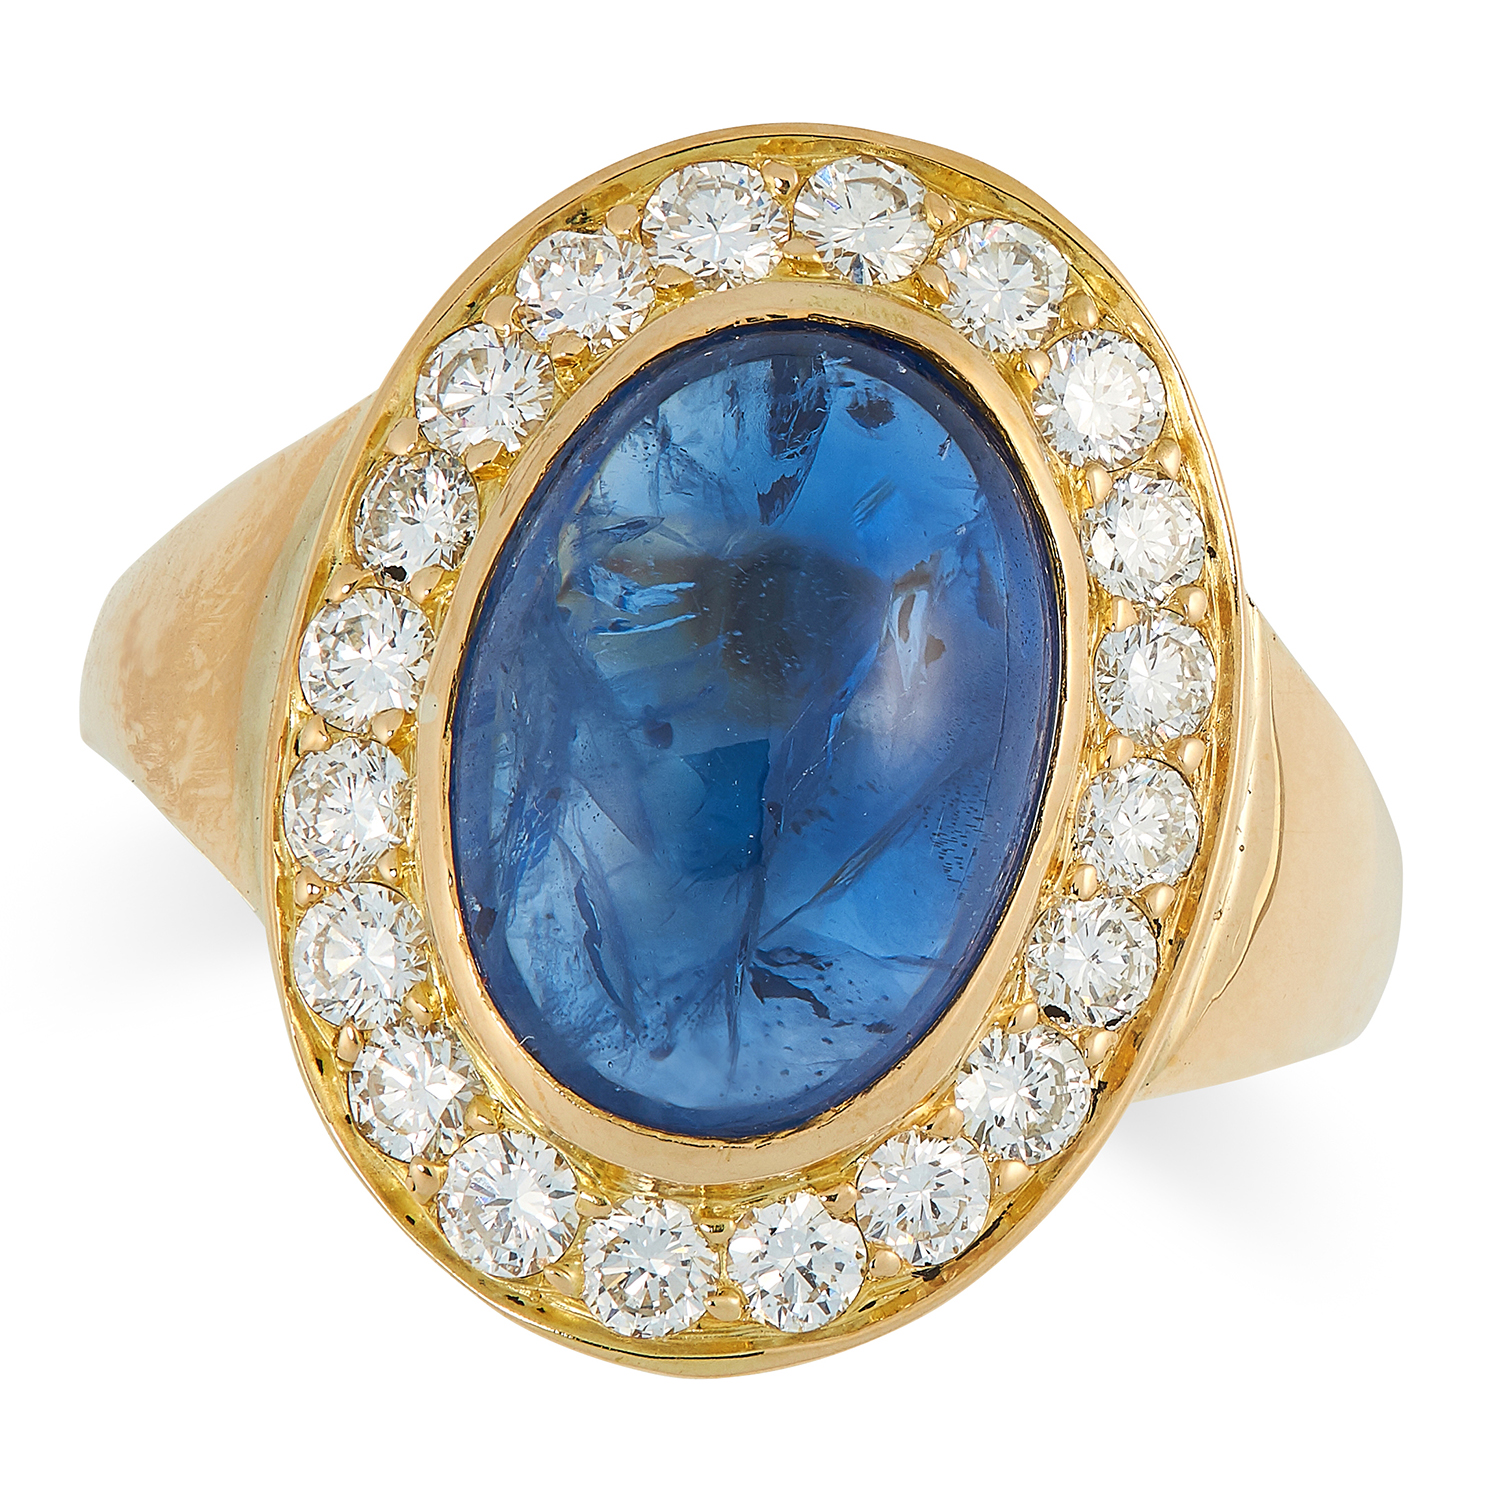 Los 16 - A SAPPHIRE AND DIAMOND CLUSTER RING set with a cabochon sapphire of 8.61 carats in a border of round